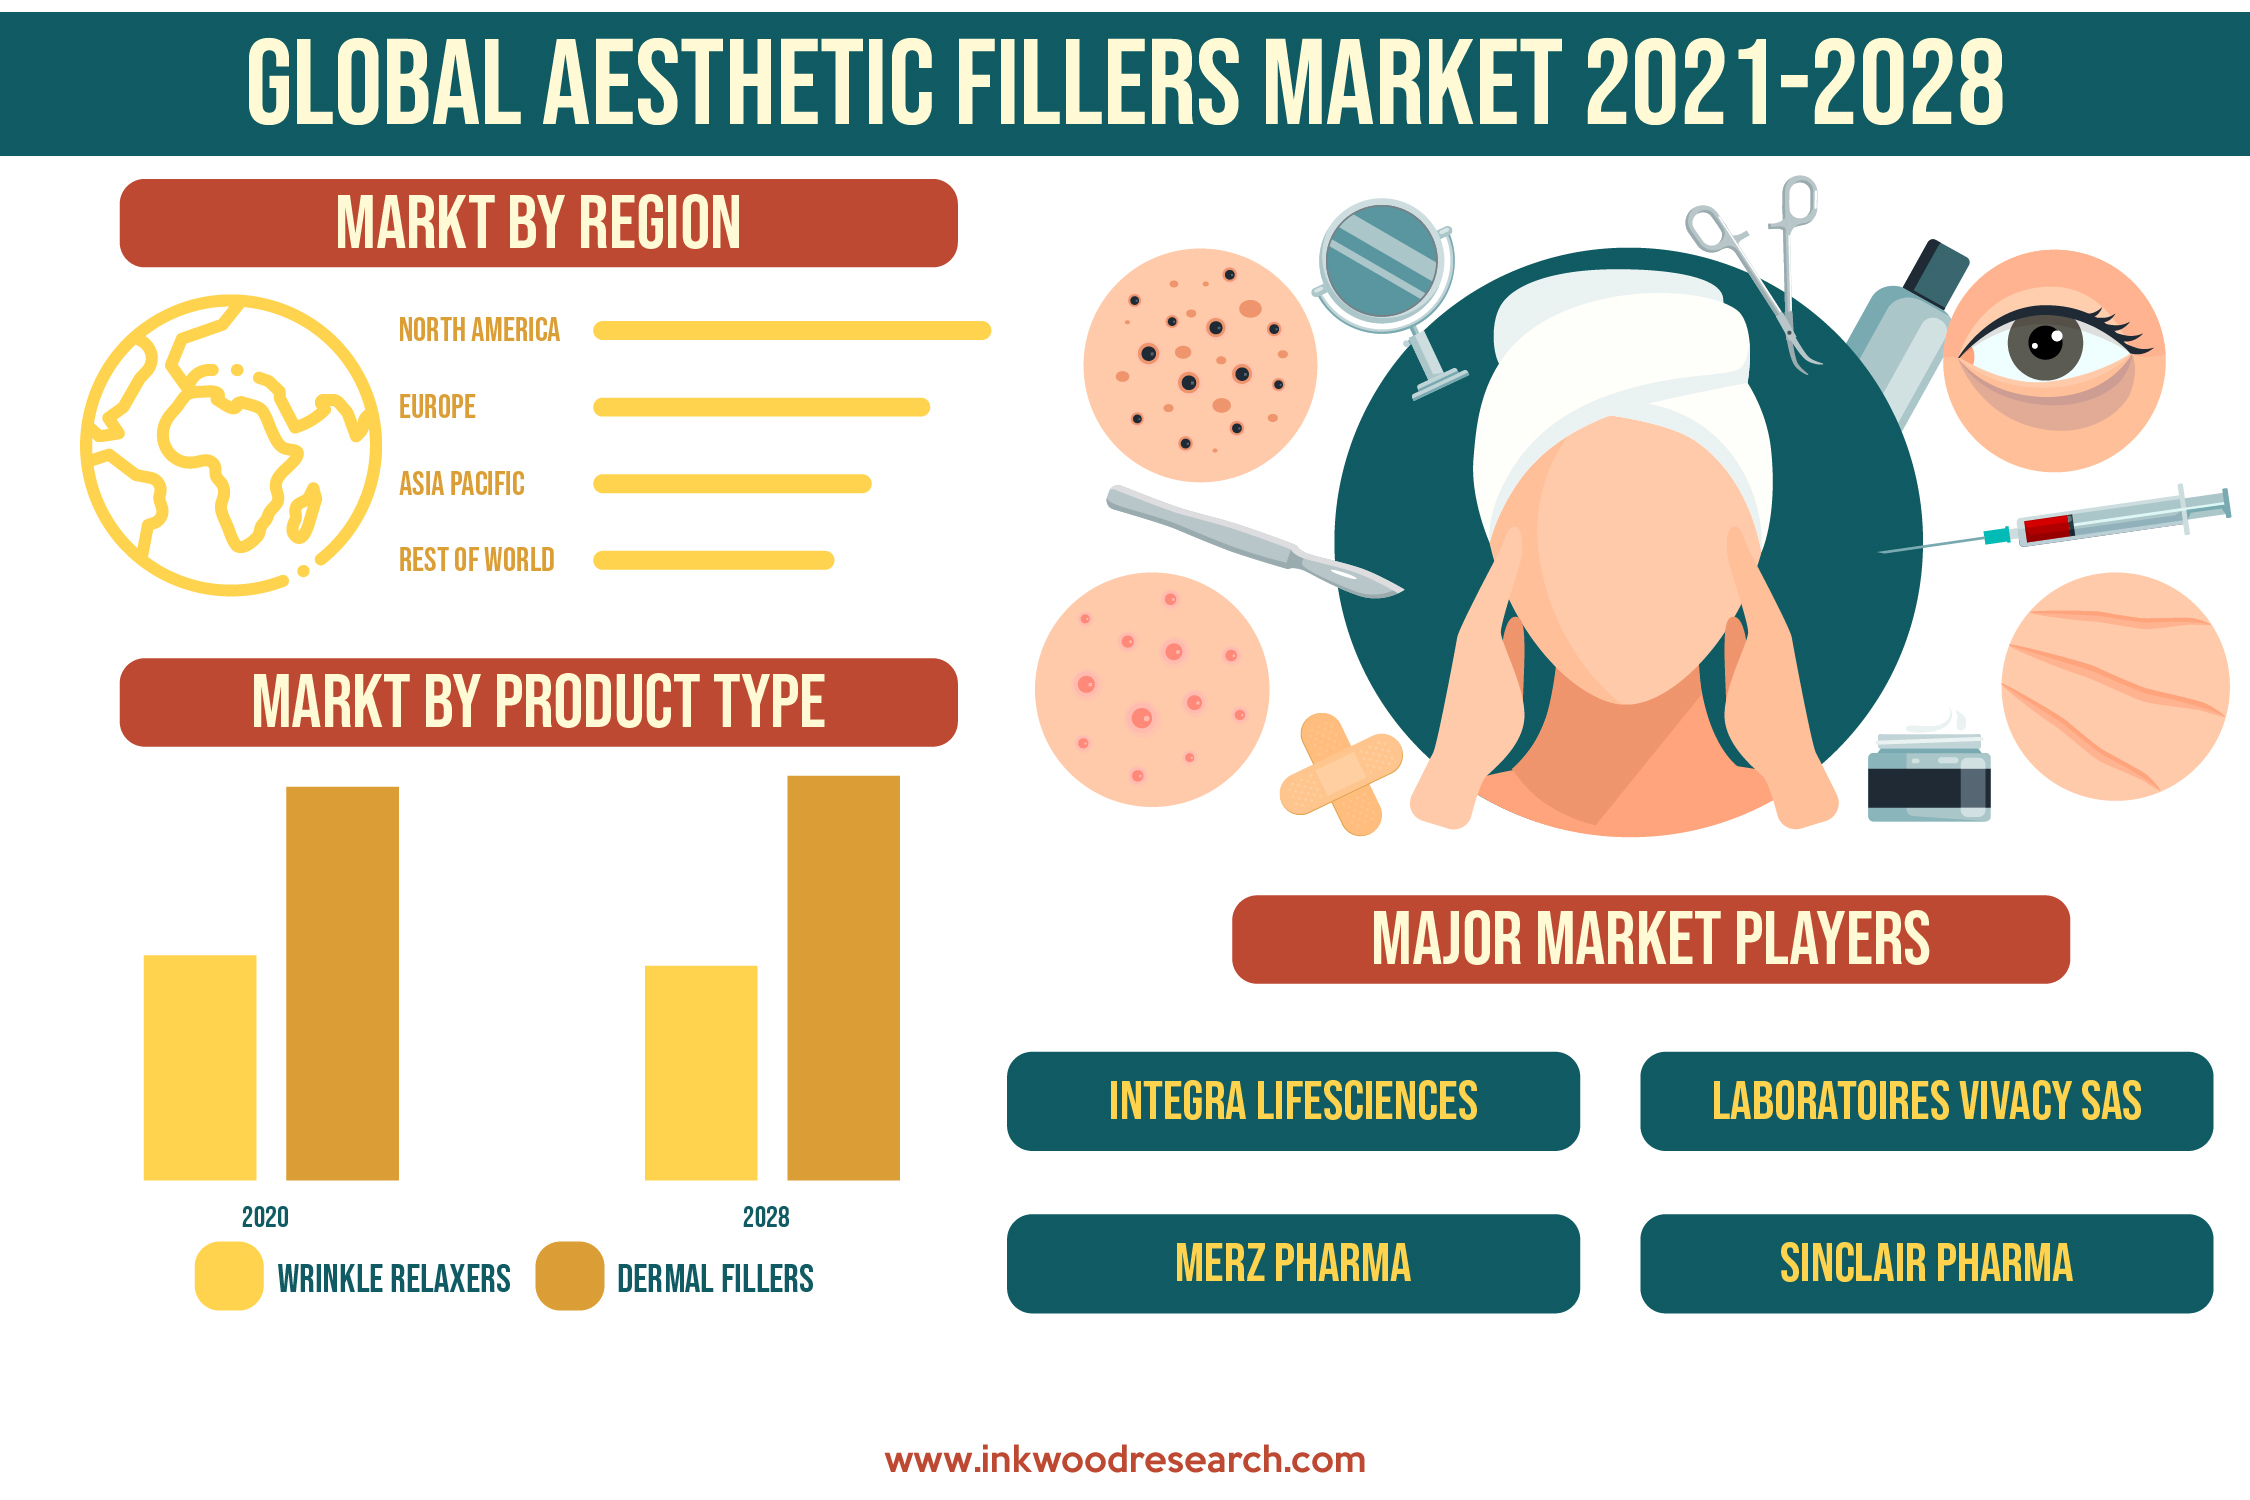 Rise in the Aging Population to Favor the Global Aesthetic Filler Market Growth